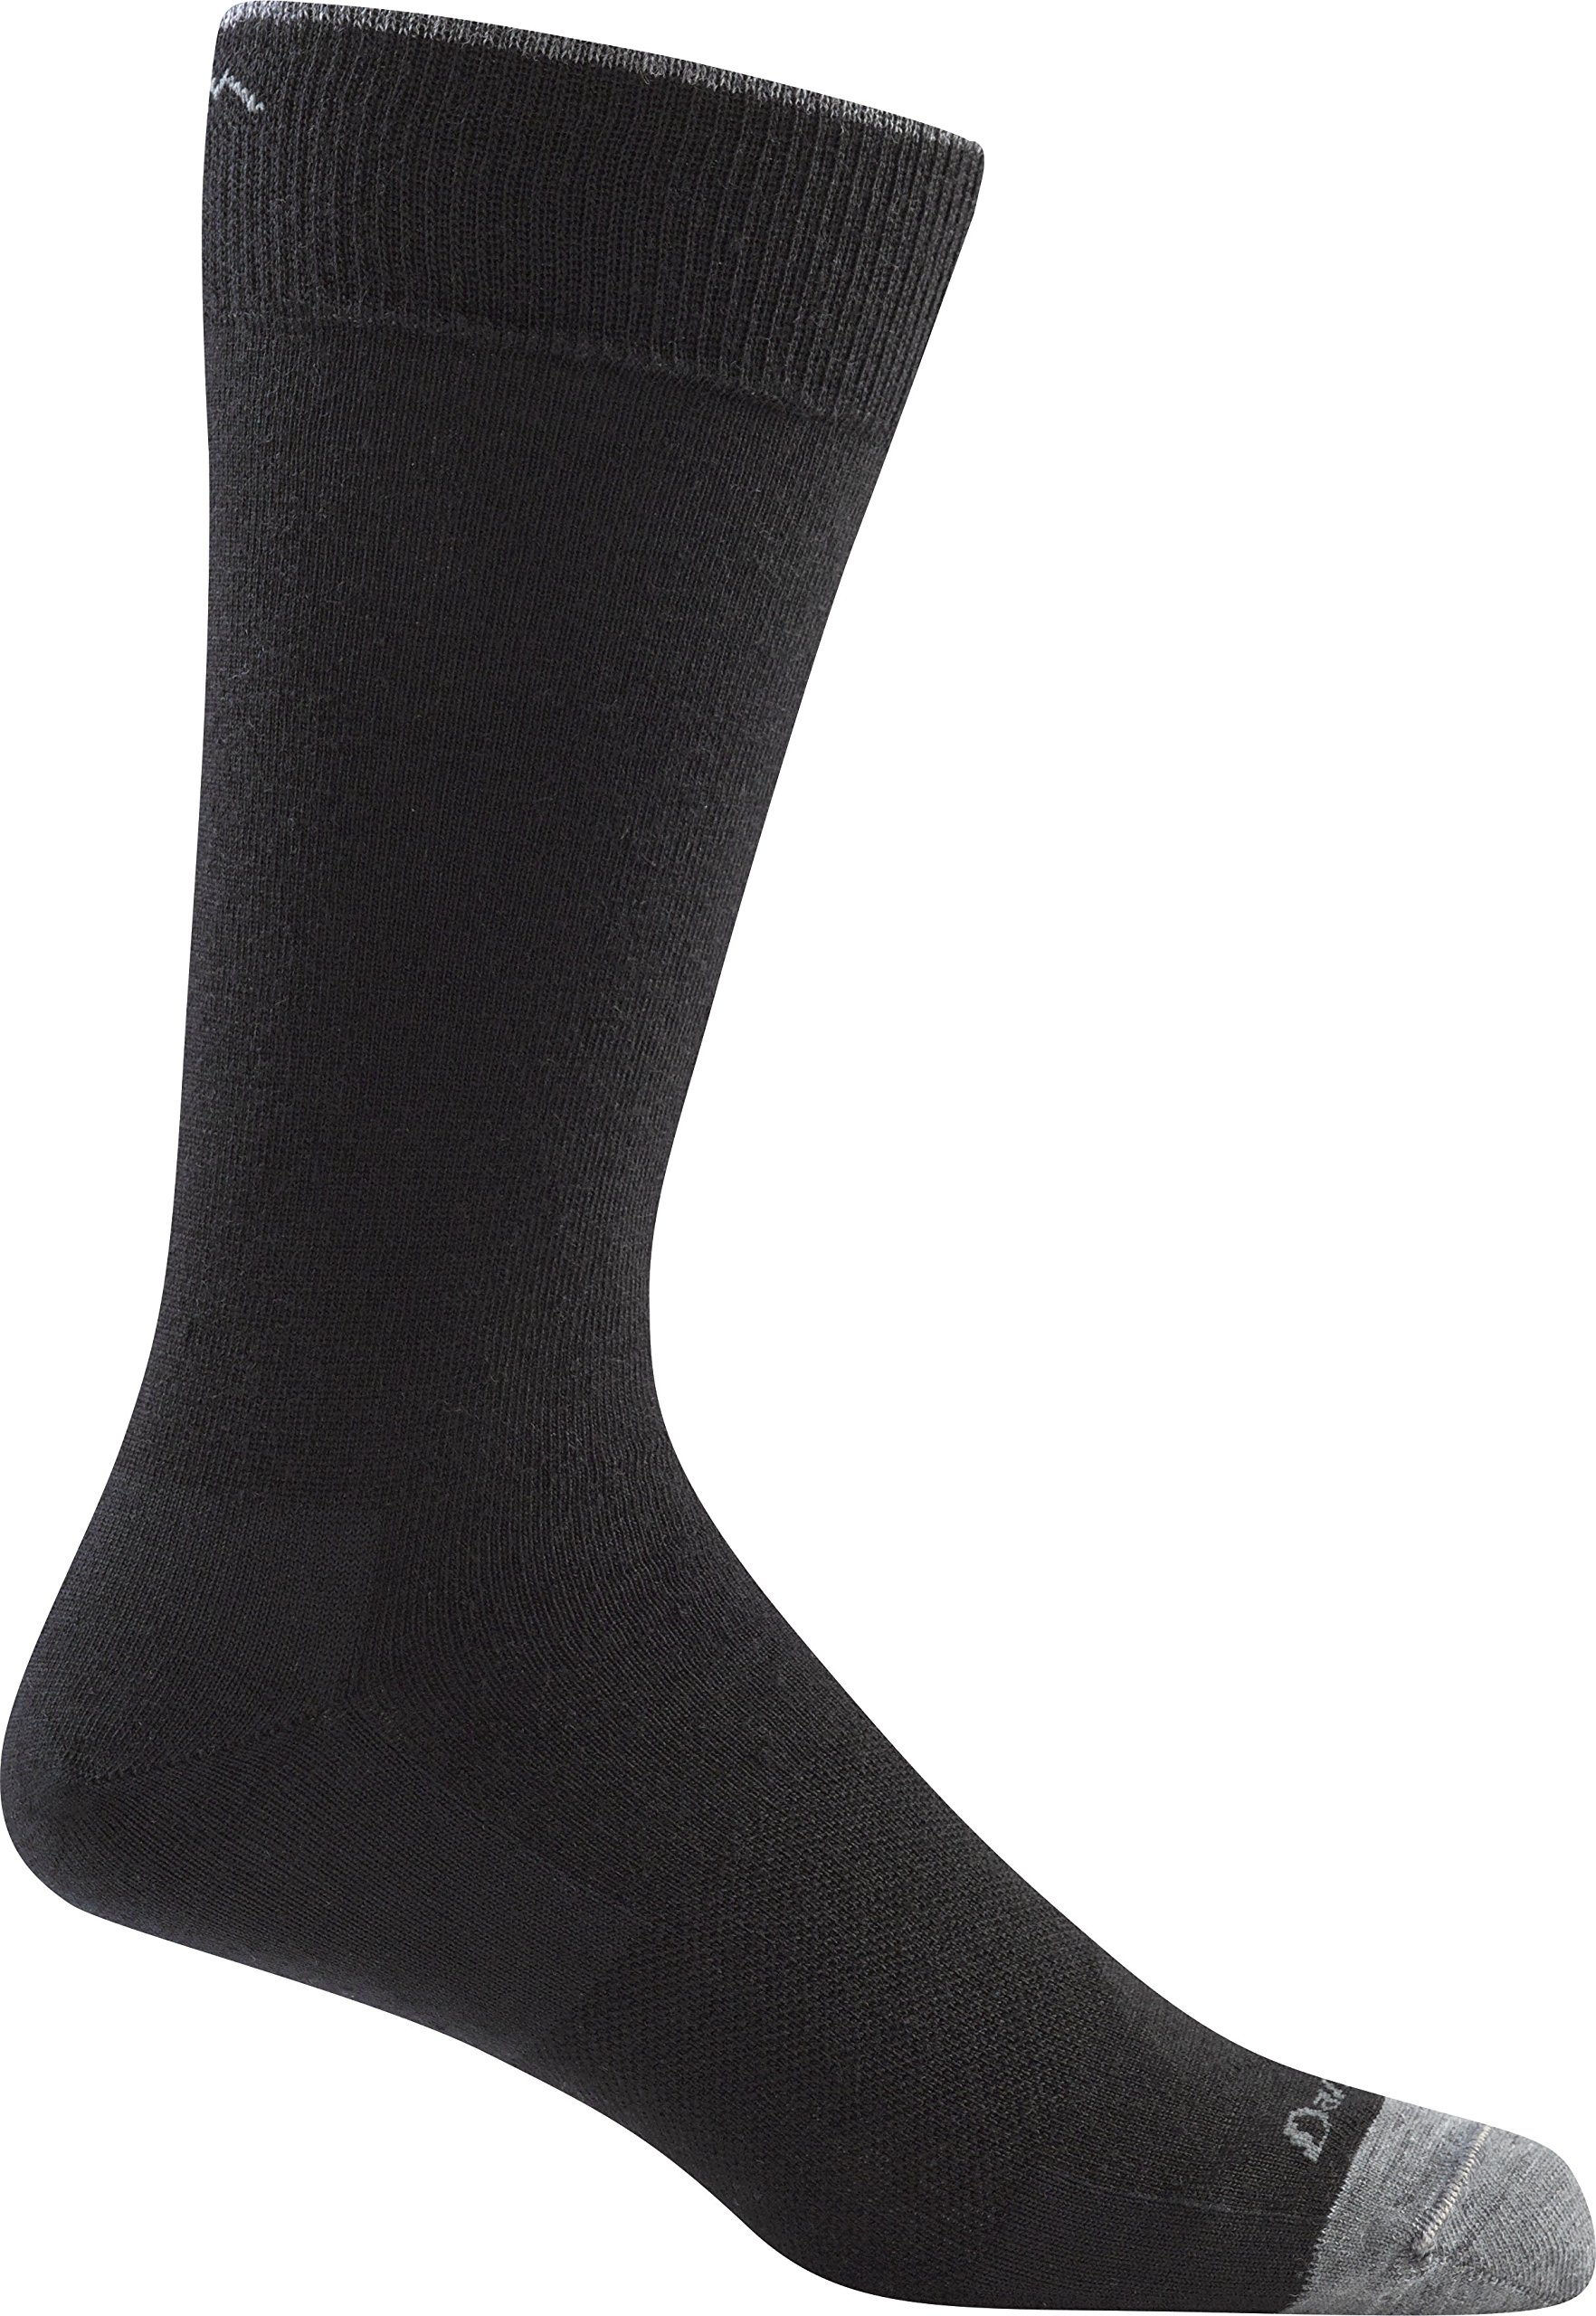 Darn Tough Men's Solid Crew Light Sock (Style 1617) Merino Wool, Black (Large 10-12) - 6 Pack by Darn Tough